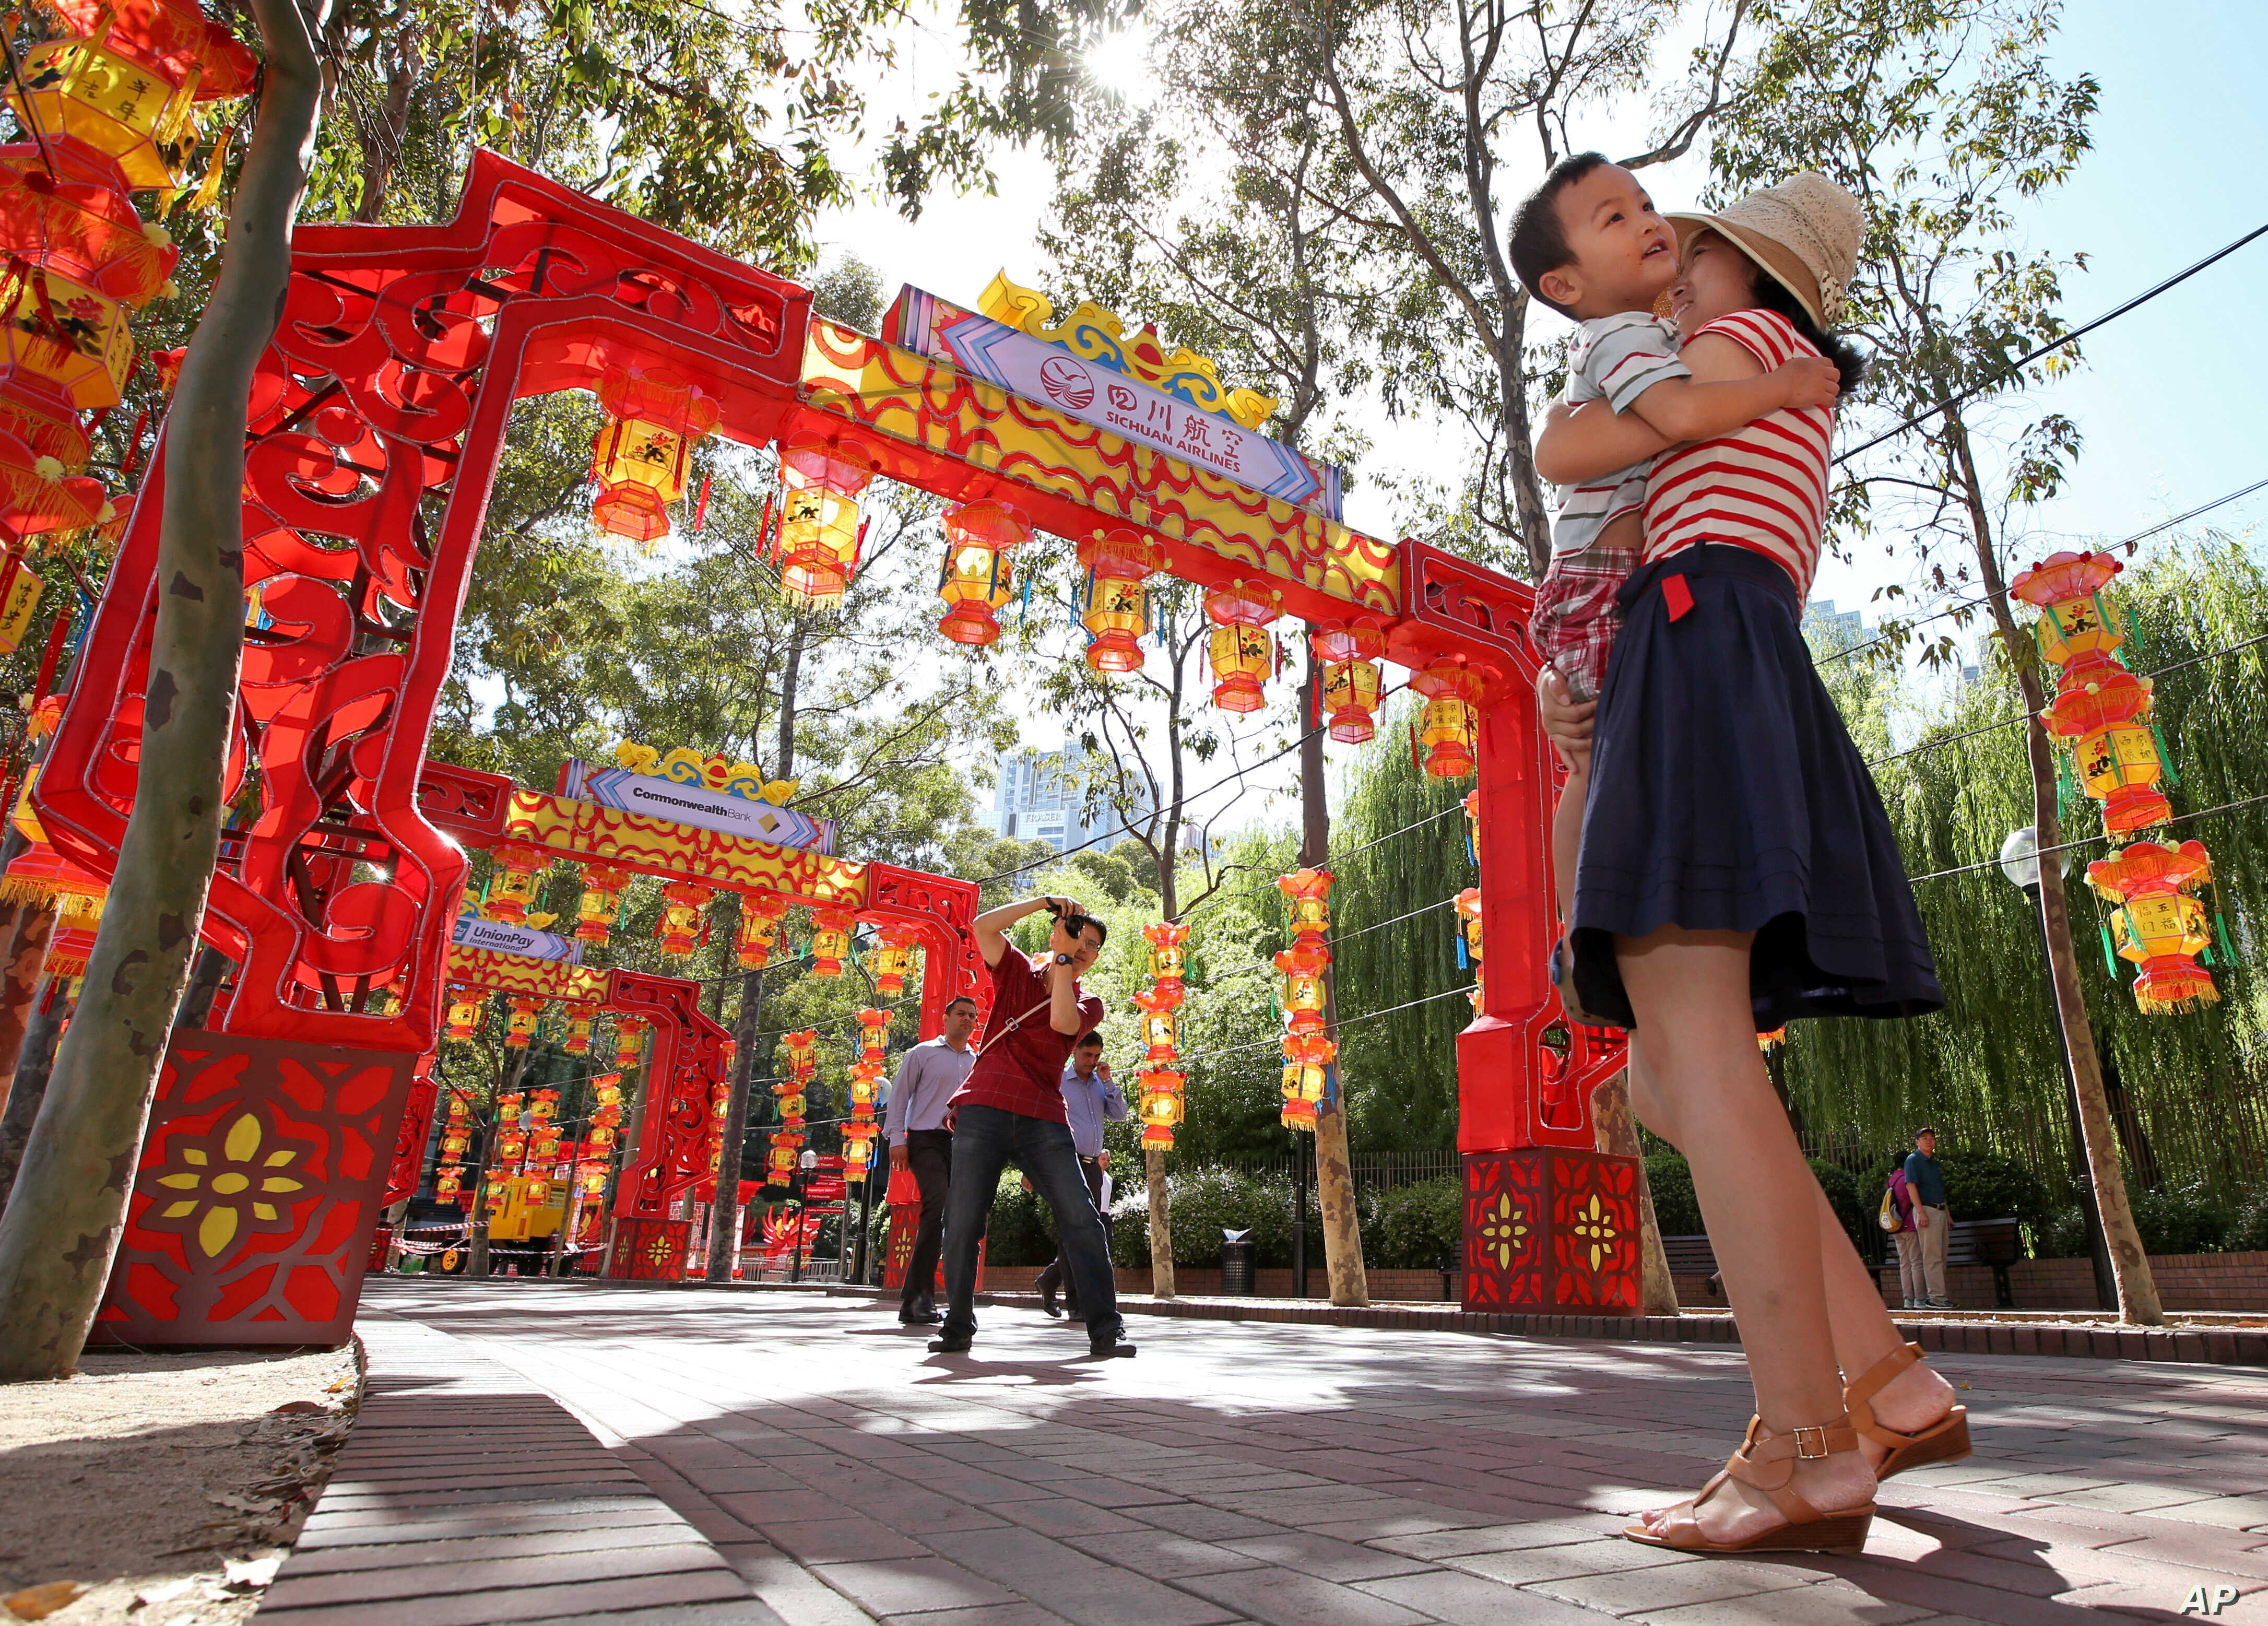 FILE -  Pen Pu, center, photographs his wife Chelsea Peng, right, and their three-year-old son Dore Peng, amongst a colorful display of arches and lanterns near the Chinese Garden of Friendship in Sydney, Australia.